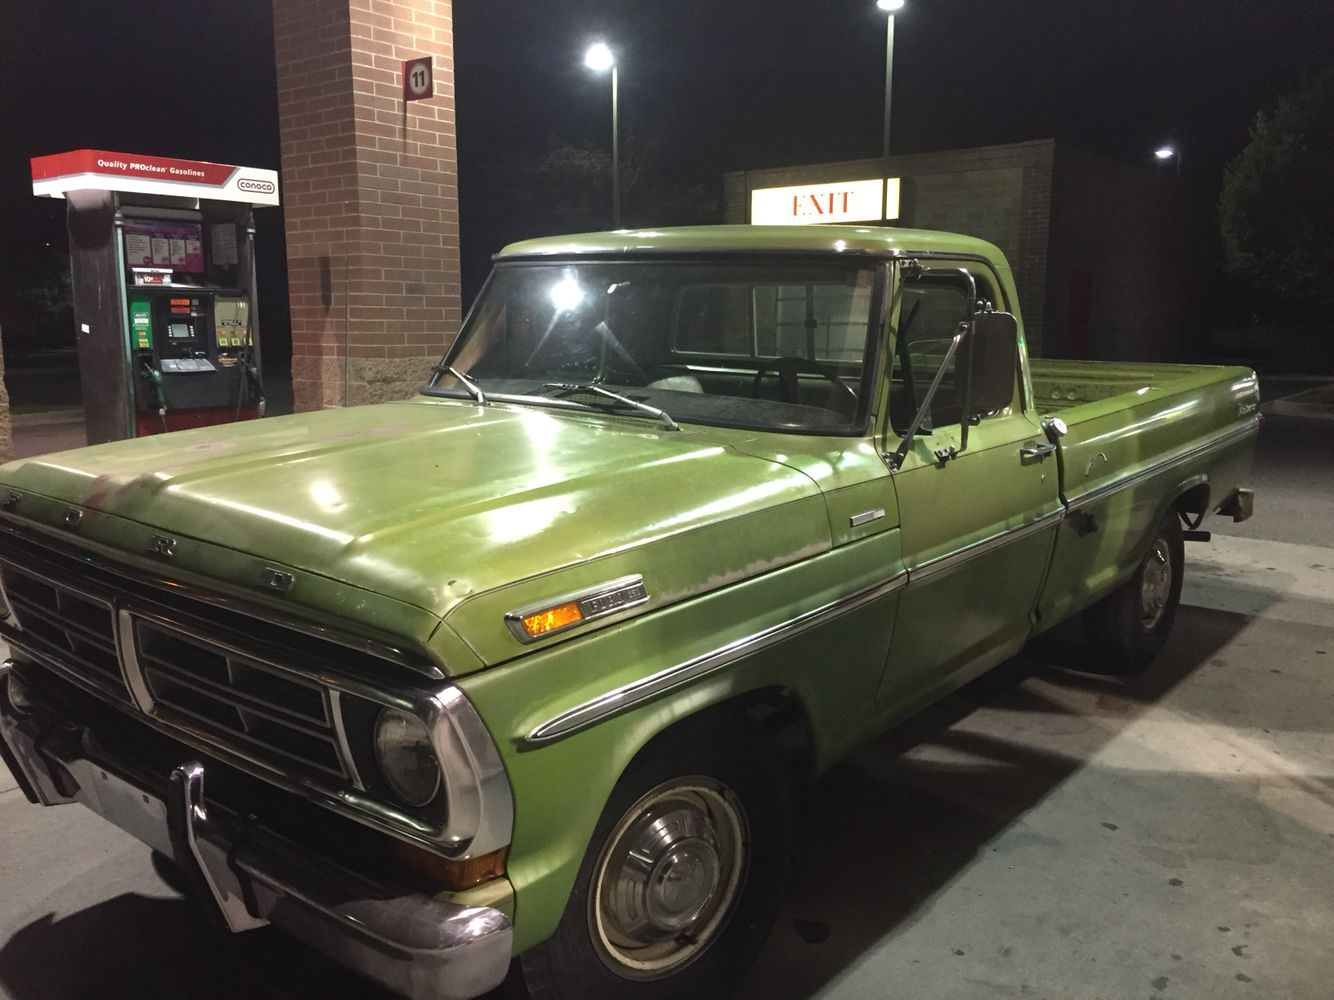 1972 Ford F 250 Camper Special Lime Green Which Was Only Available 1964 F250 On The Explorer For Second Half Of Comes In 4 Colors That